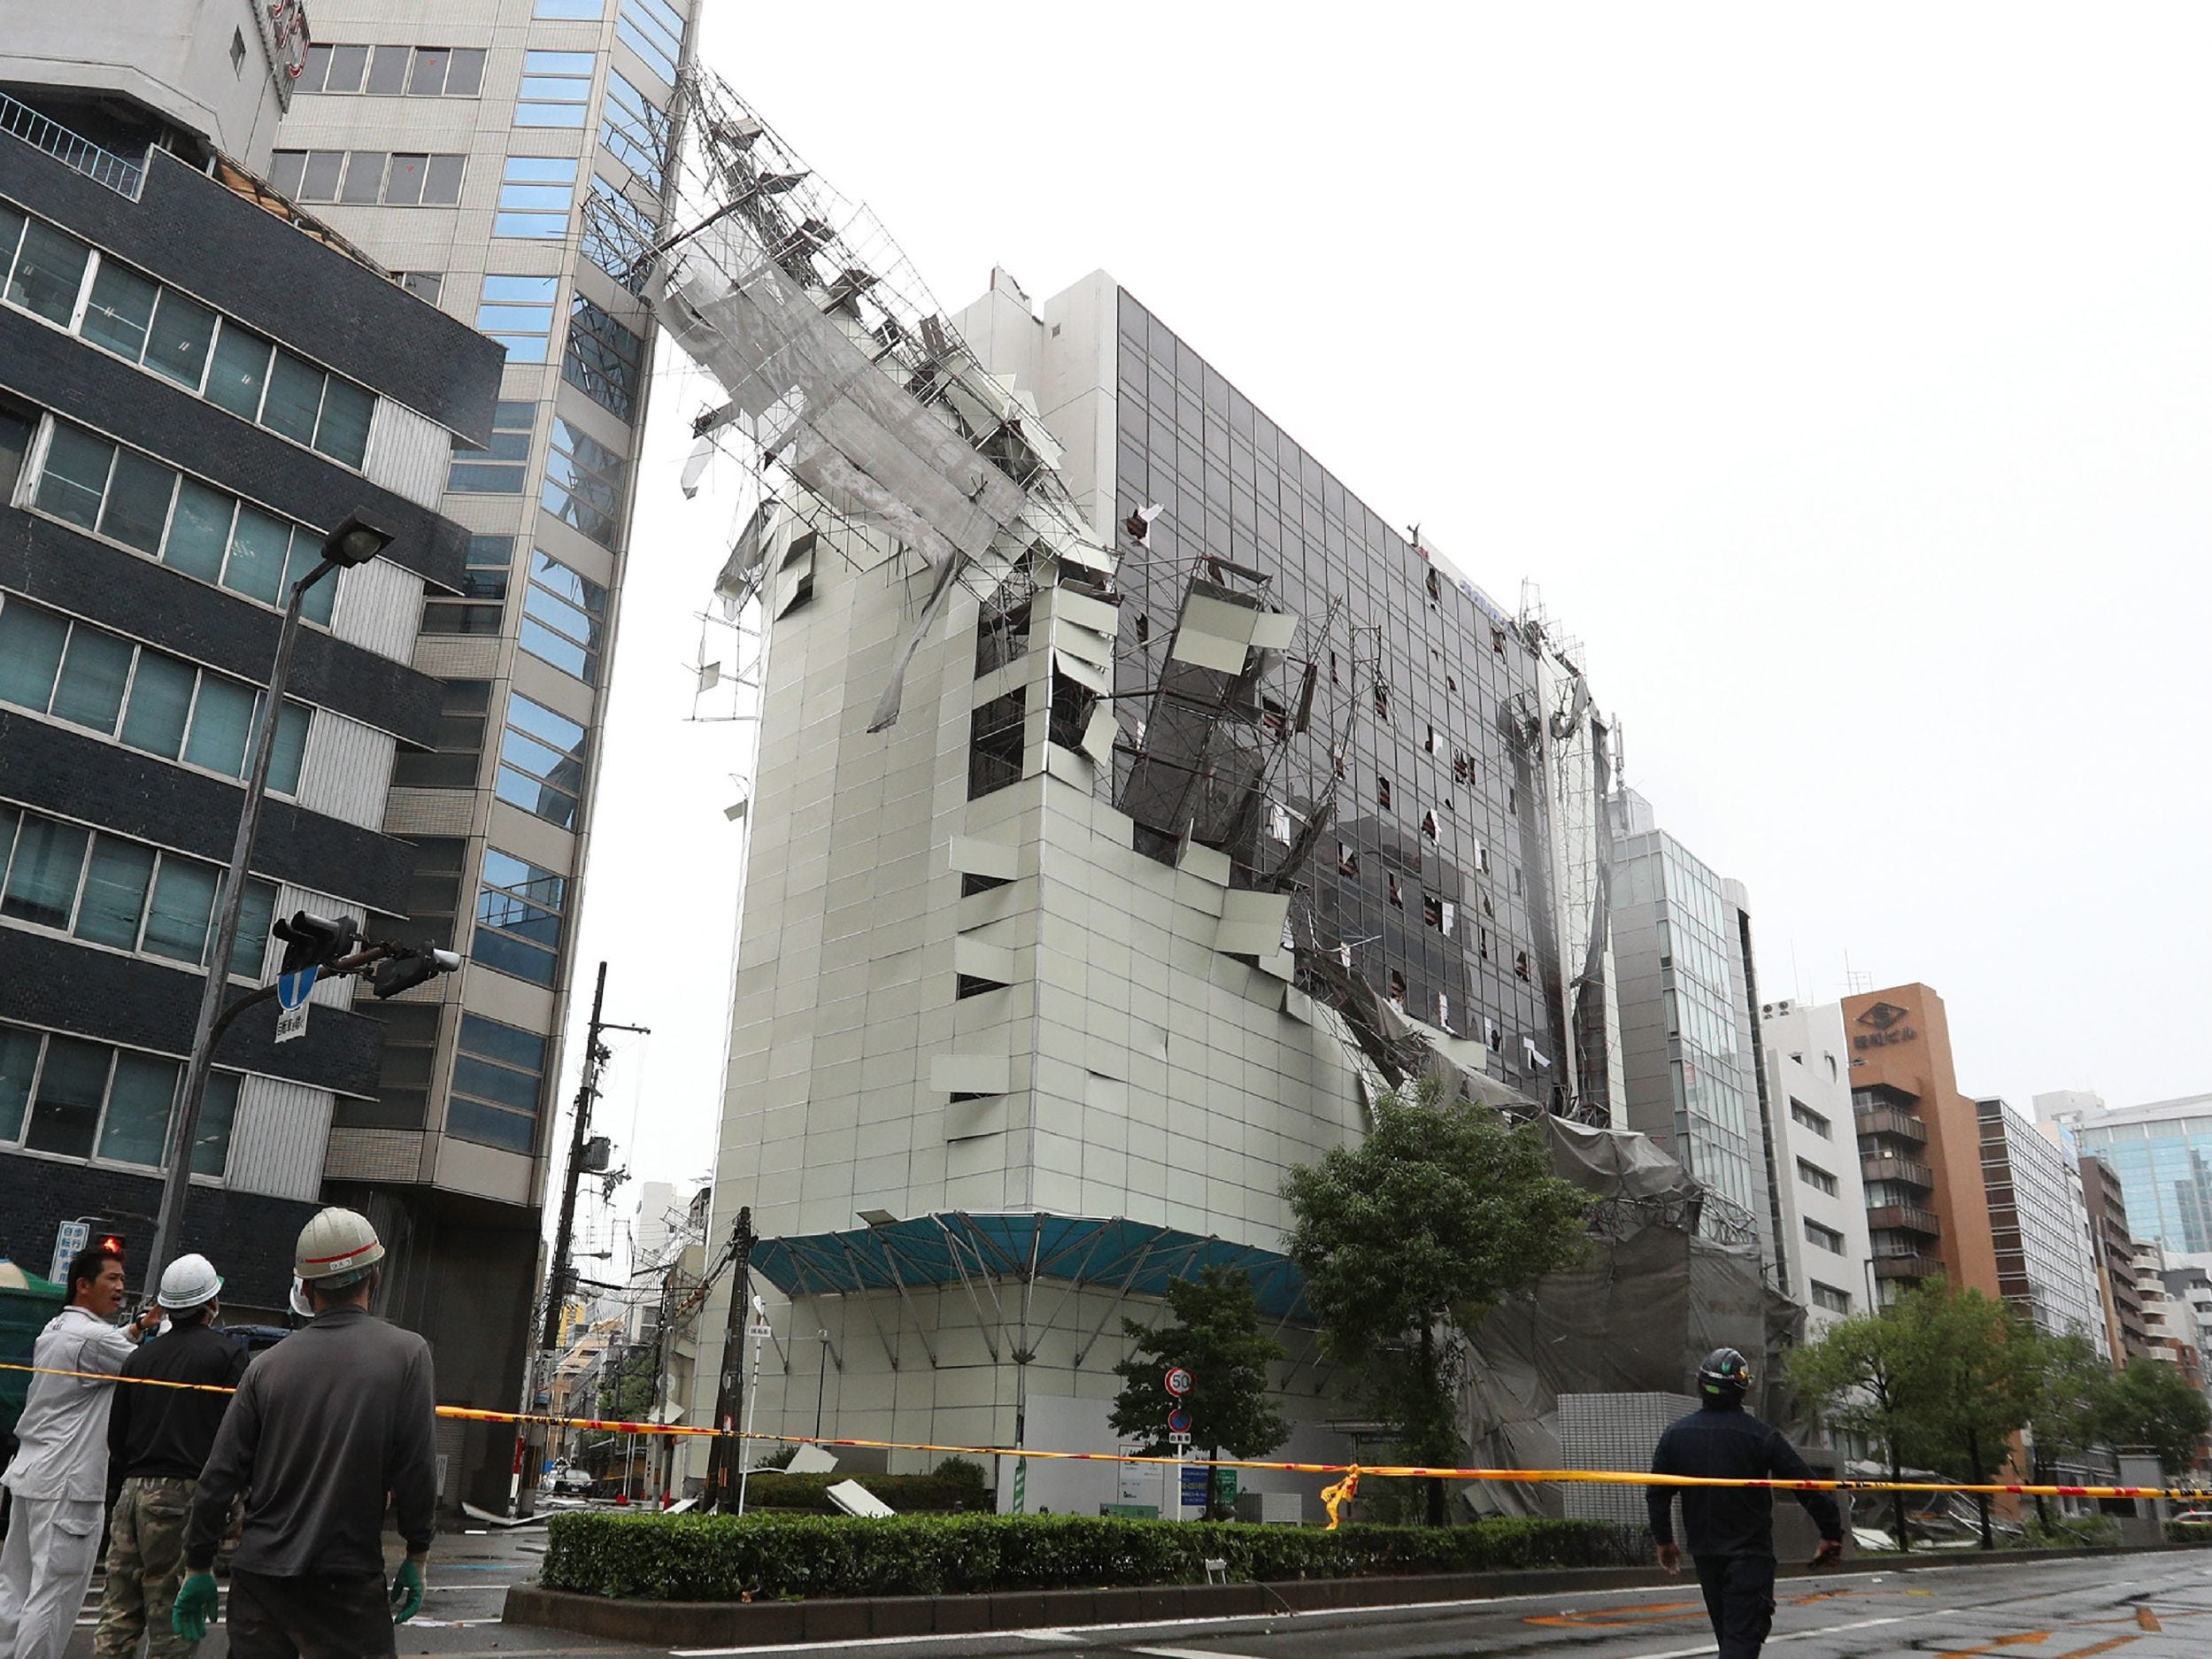 Damage from loose construction scaffolding due to weather patterns from Typhoon Jebi is seen in Osaka on September 4, 2018, as the typhoon made landfall around midday in southwestern Japan. - The strongest typhoon to hit Japan in 25 years made landfall on September 4, the country's weather agency said, bringing violent winds and heavy rainfall that prompted evacuation warnings. (Photo by JIJI PRESS / JIJI PRESS / AFP) / Japan OUTJIJI PRESS/AFP/Getty Images ORIG FILE ID: AFP_18U2M7